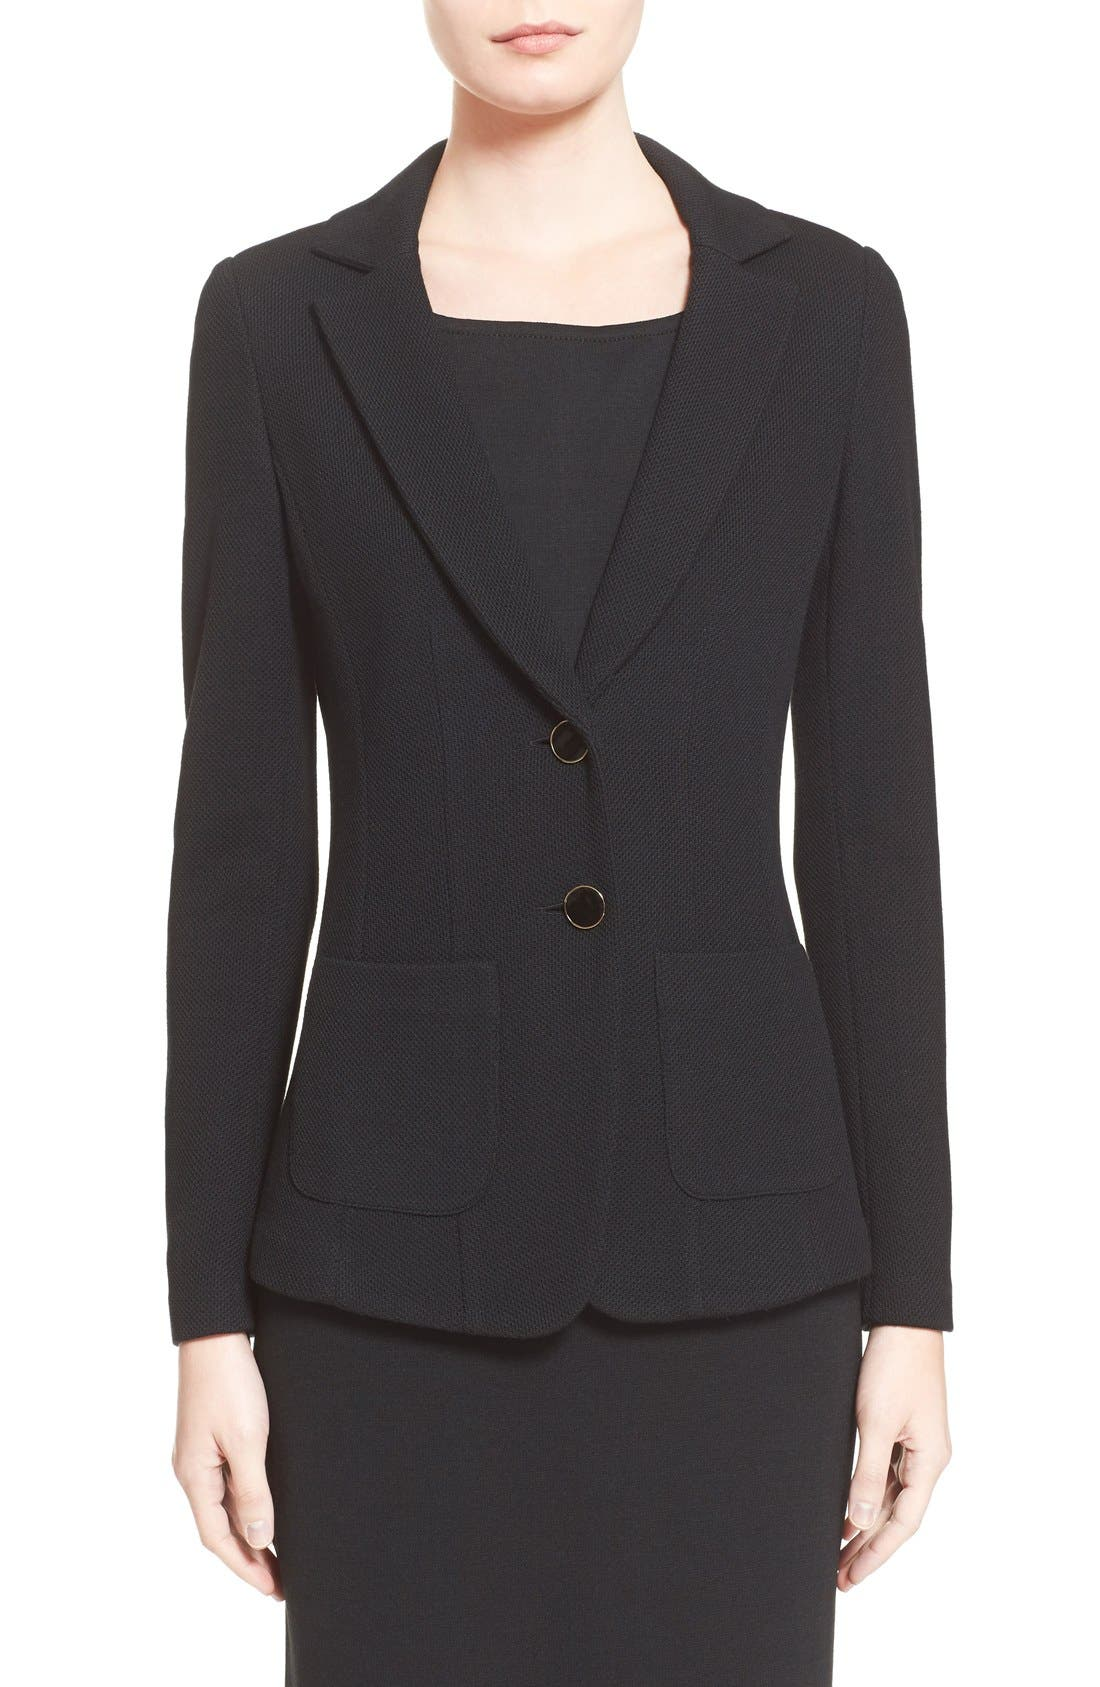 ST. JOHN COLLECTION Milano Piqué Knit Jacket, Main, color, CAVIAR